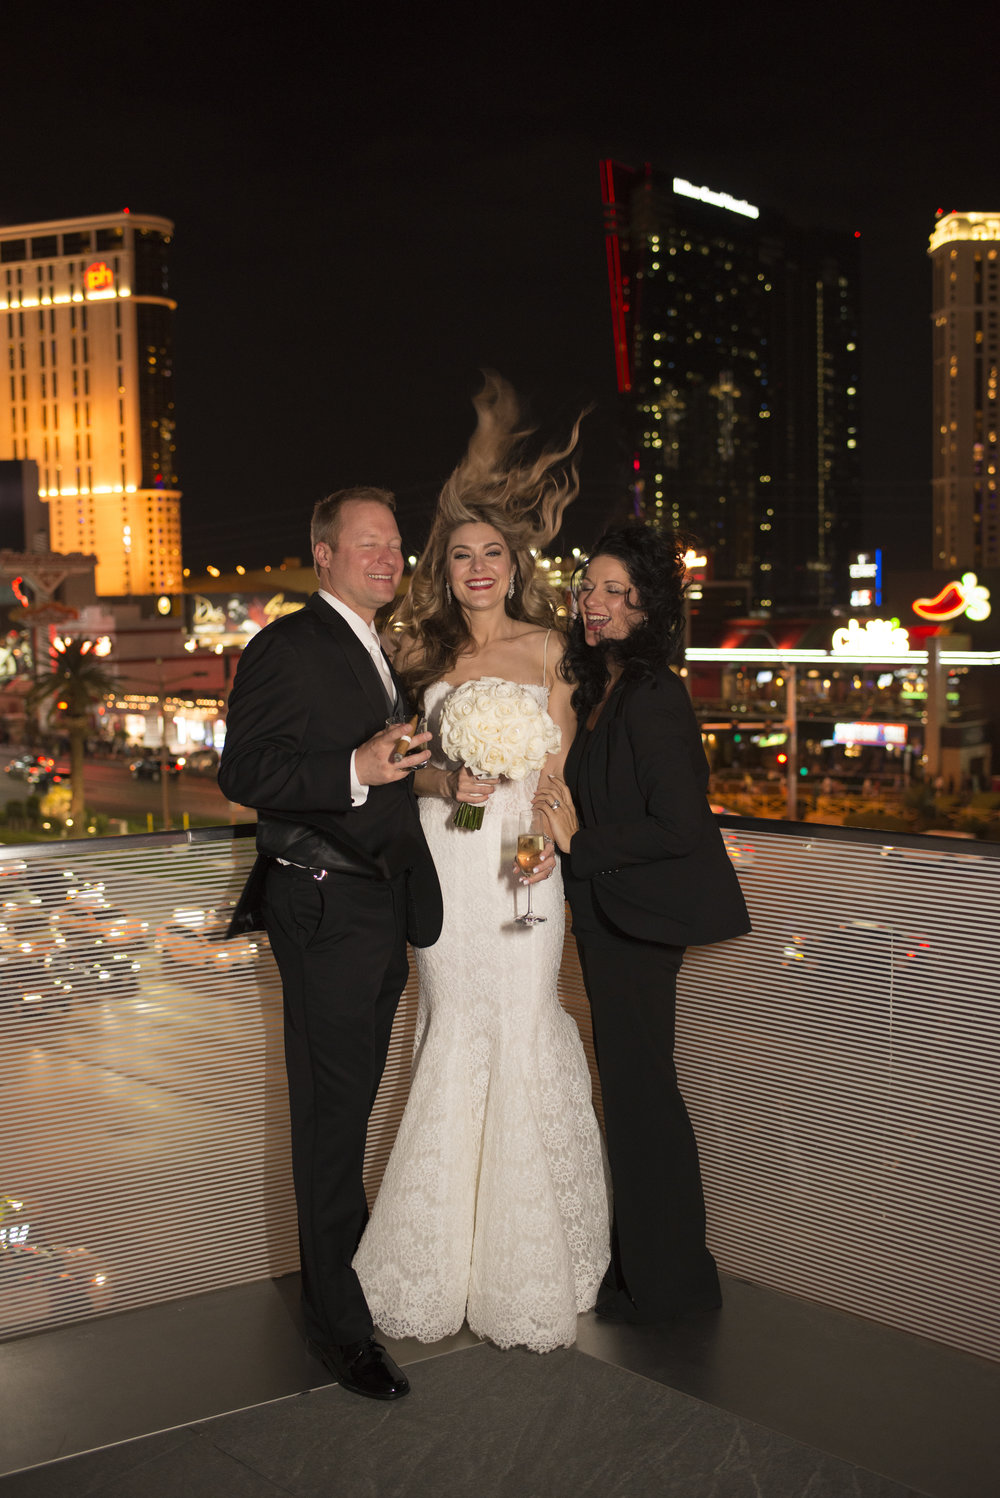 Windy Wedding Photo with Las Vegas Wedding Planner Andrea Eppolito.  Image by AltF.